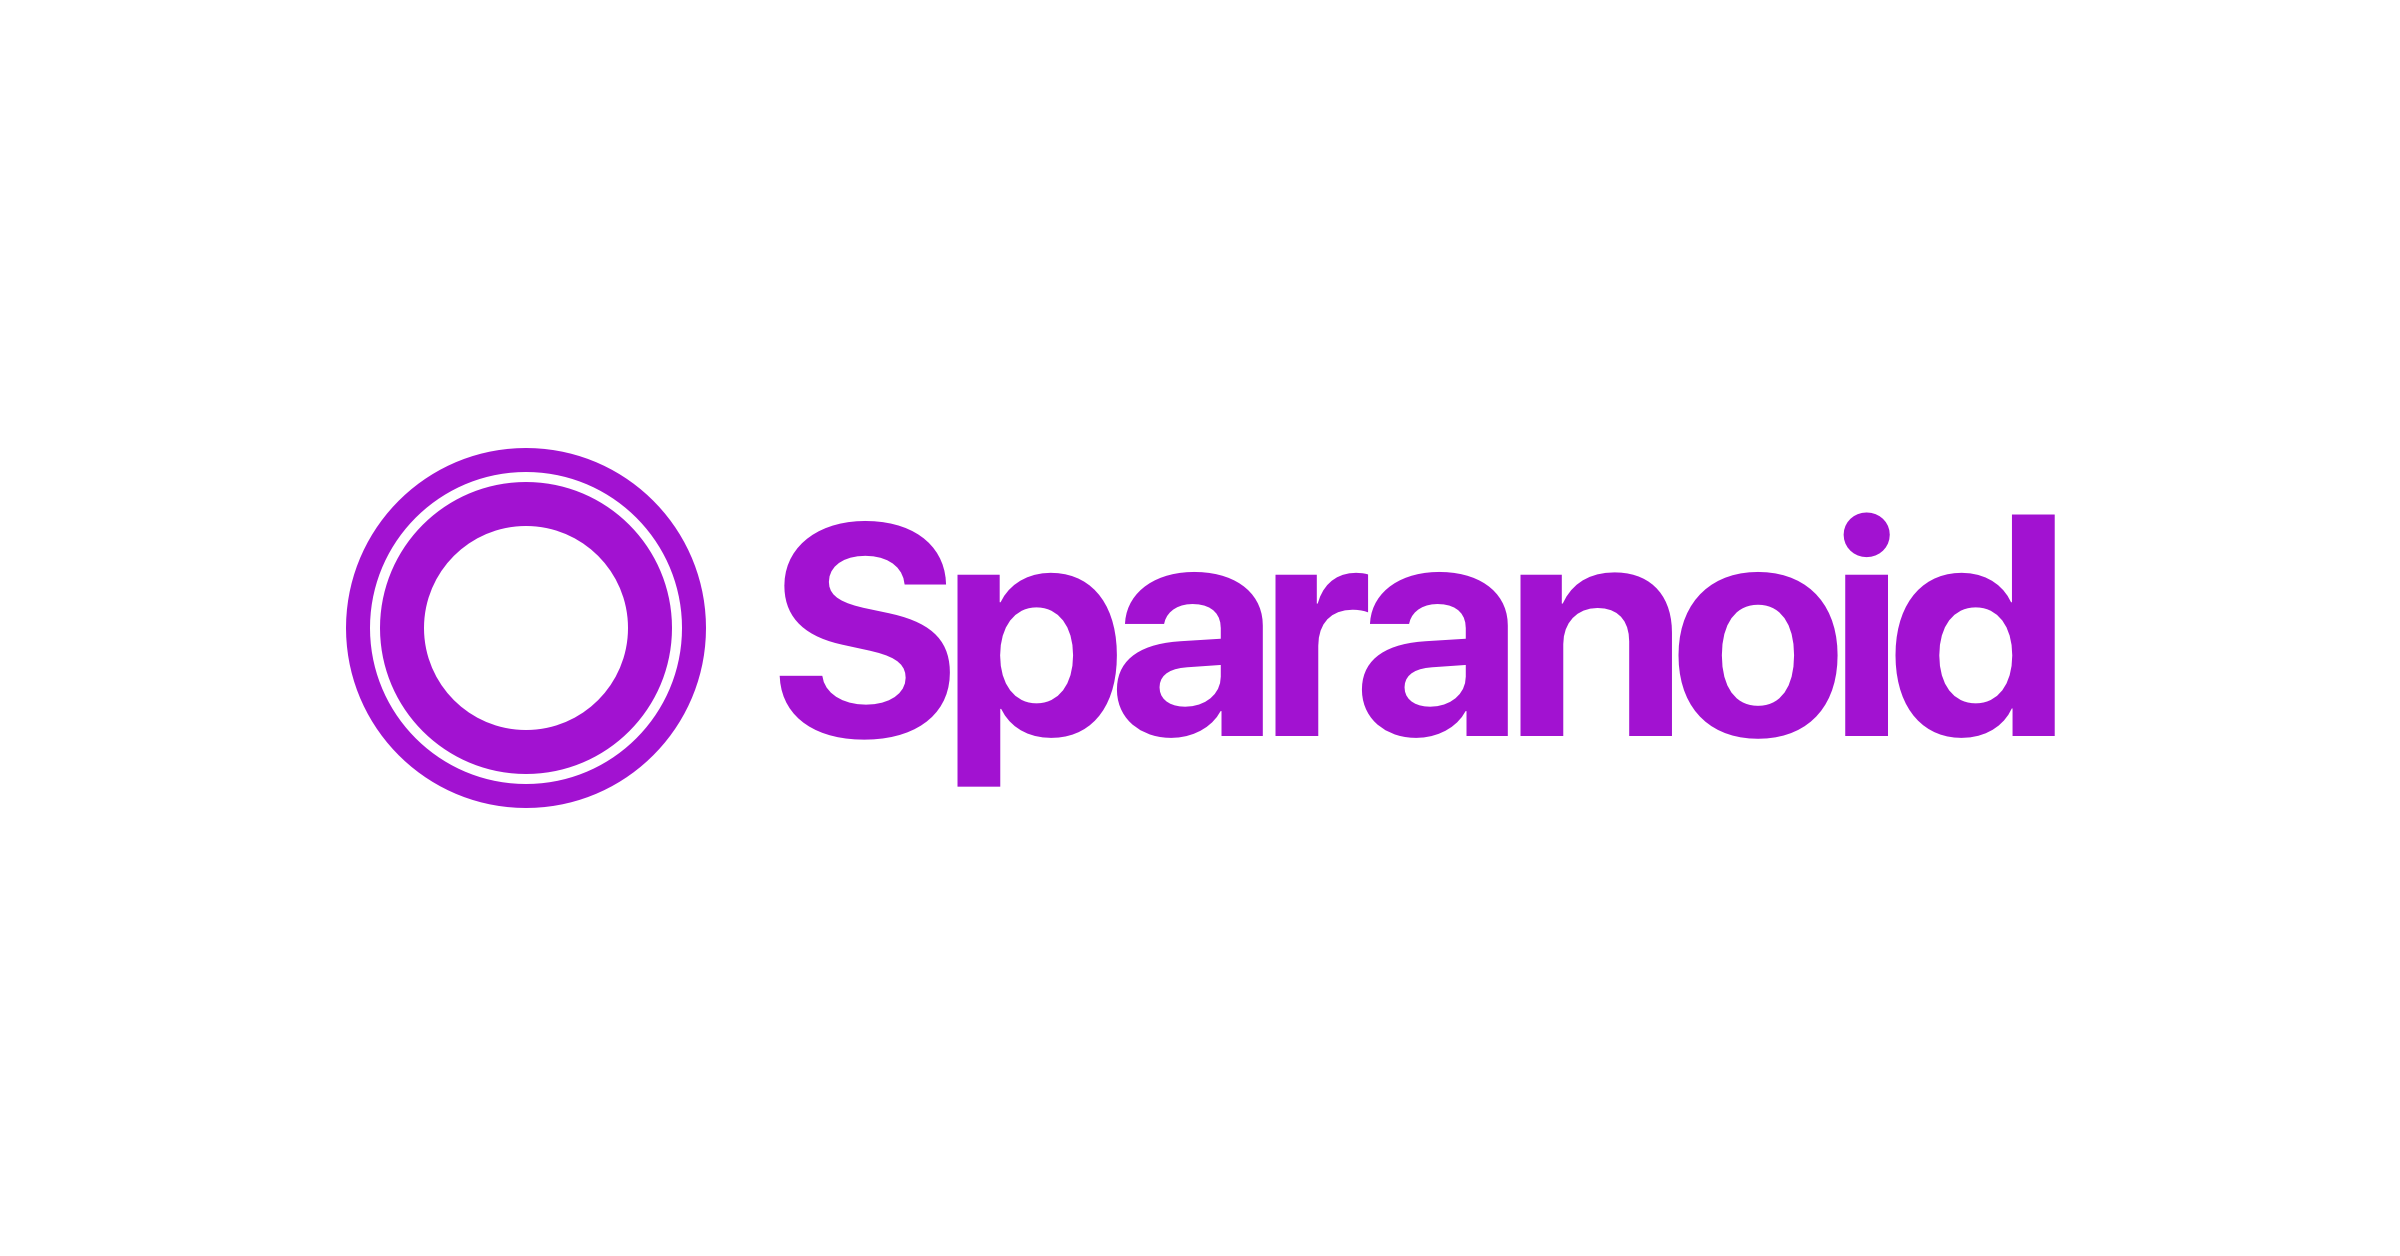 Ansible Advanced lineinfile - Sparanoid